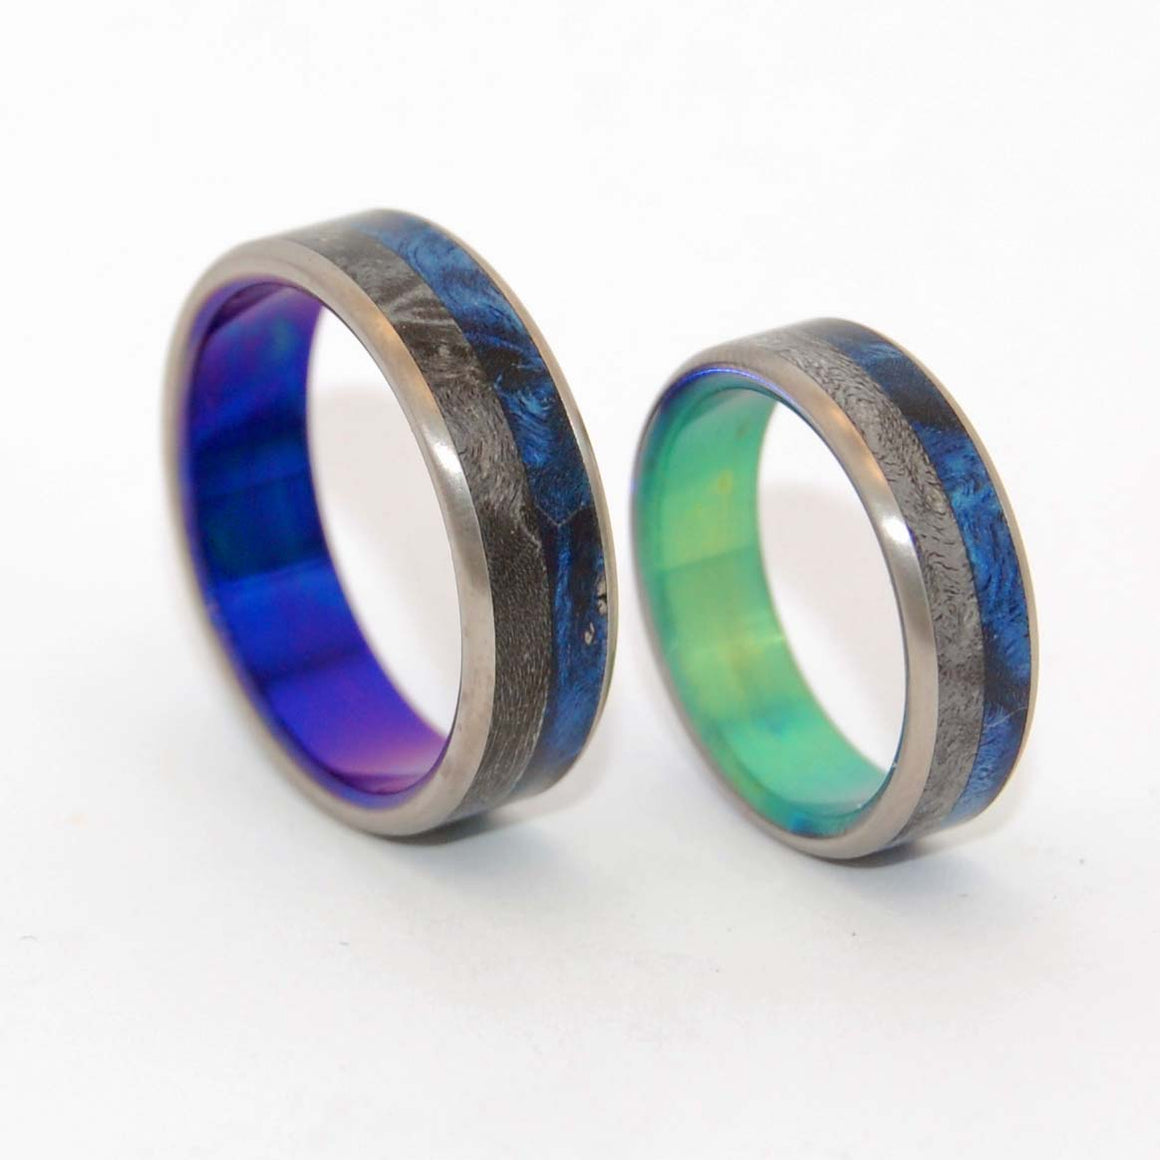 Take Me With You | His and Hers Titanium Wedding Ring Set